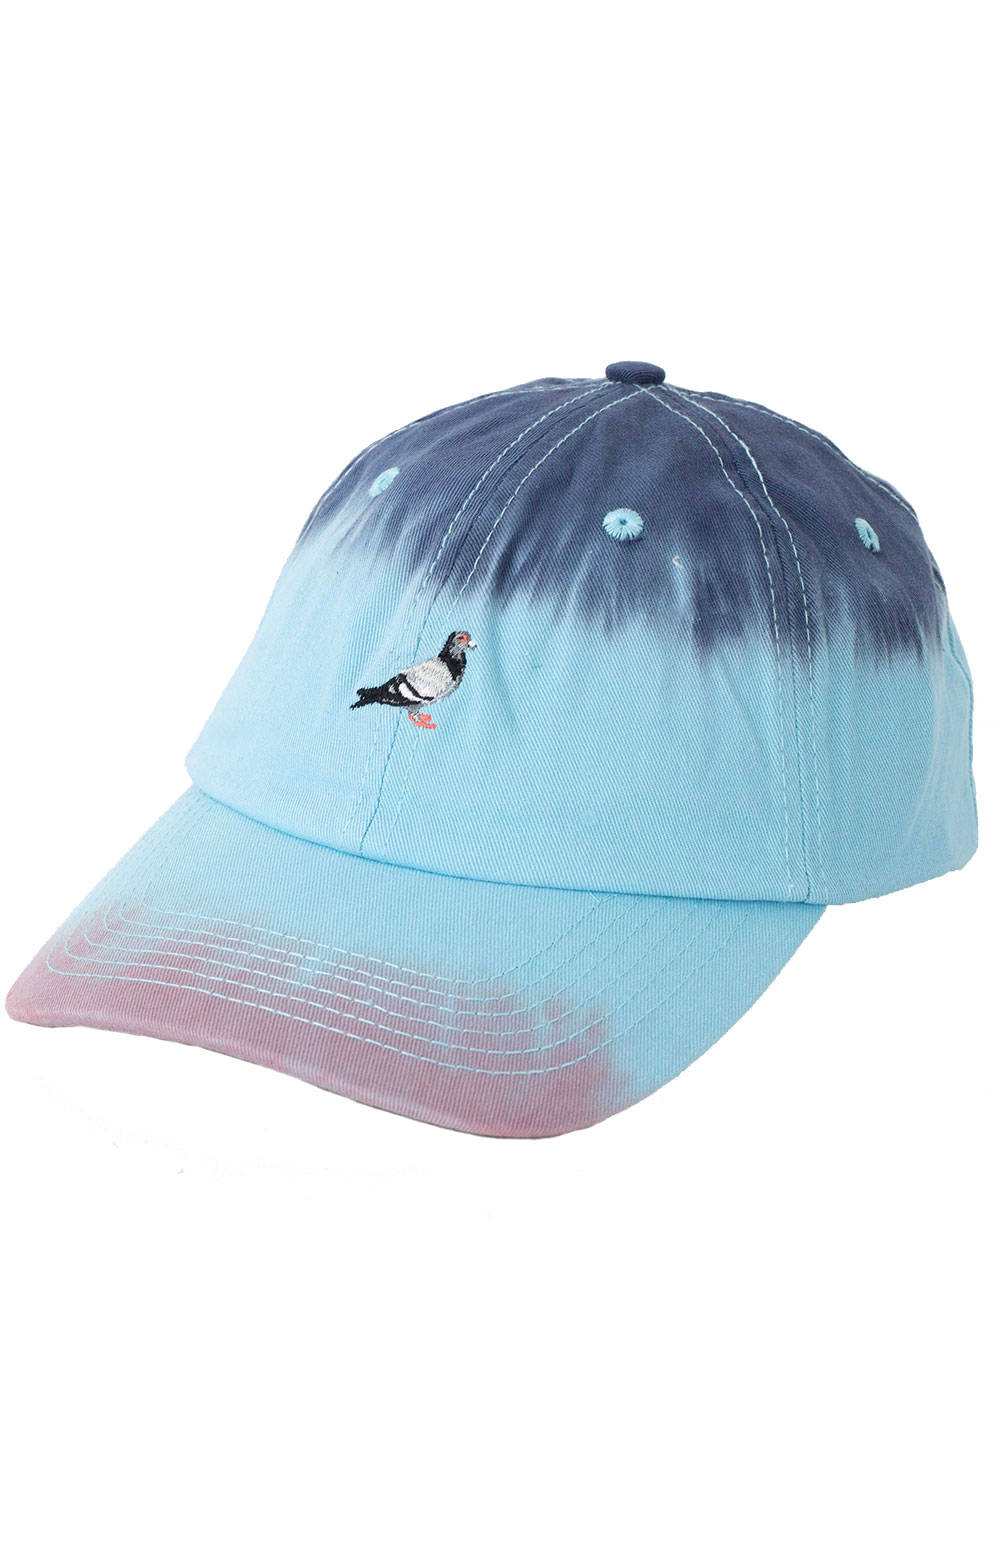 Dyed Panel Dad Hat - Teal